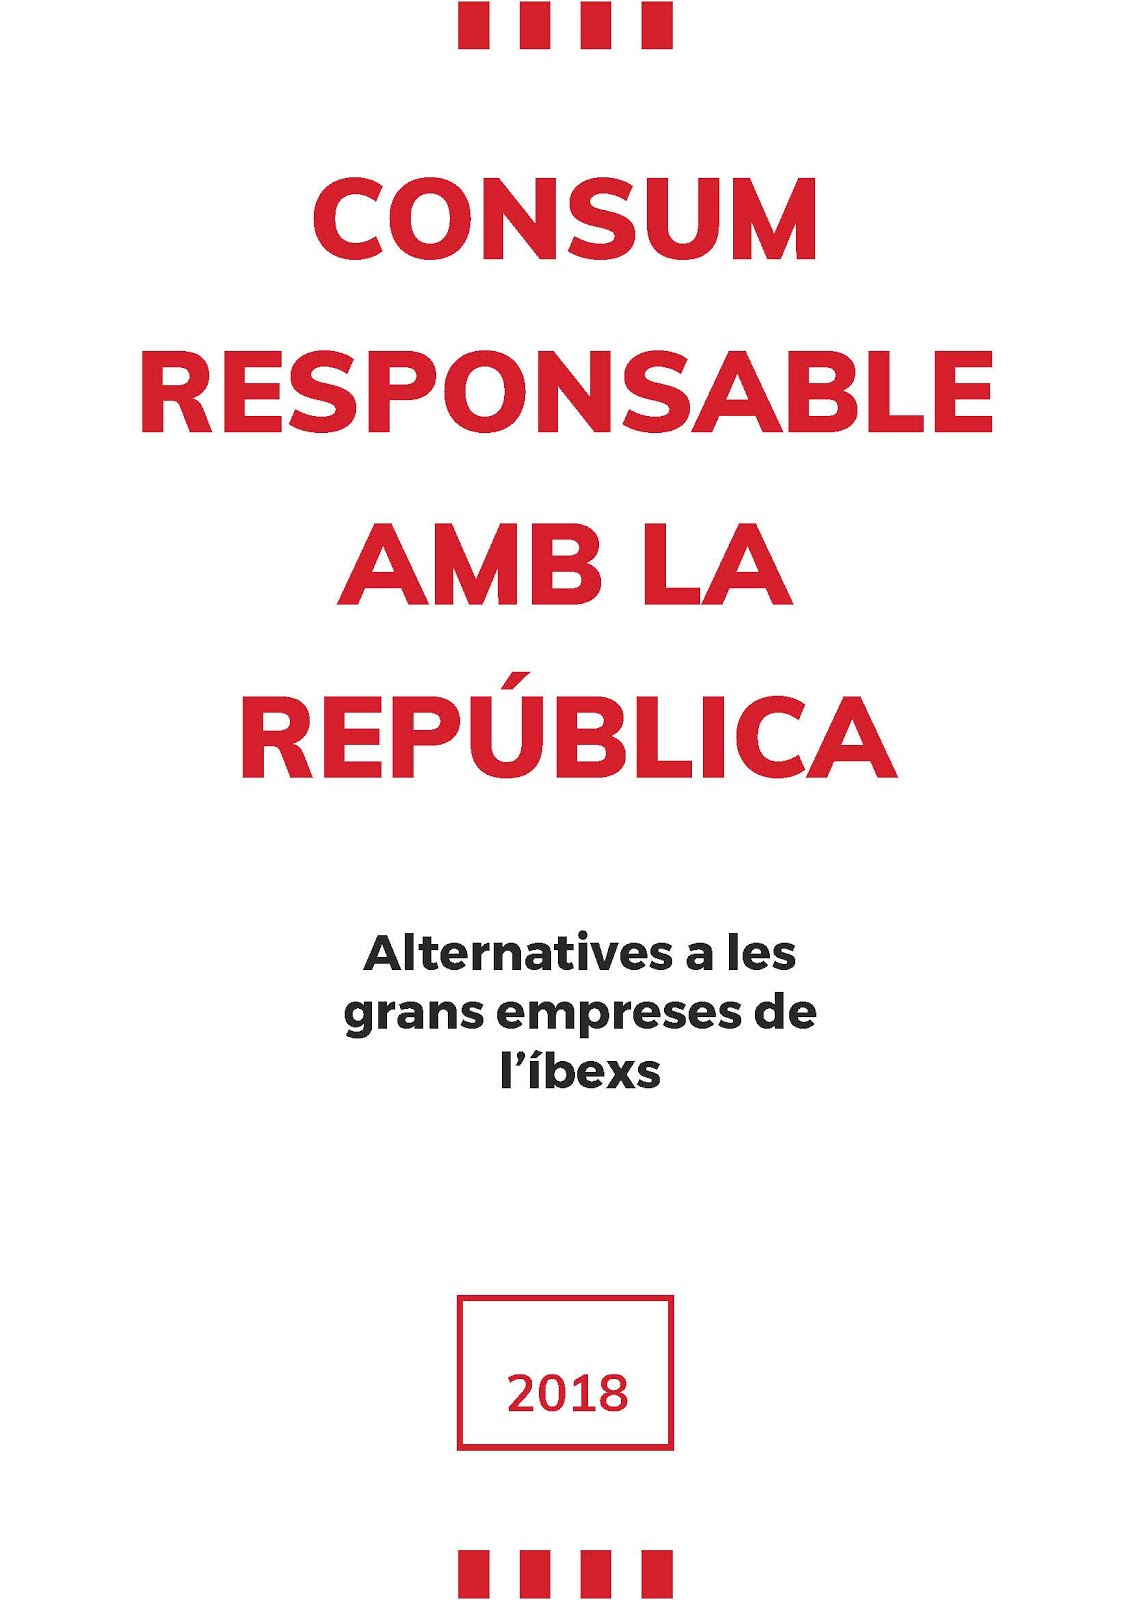 Alternatives a l'IBEX35